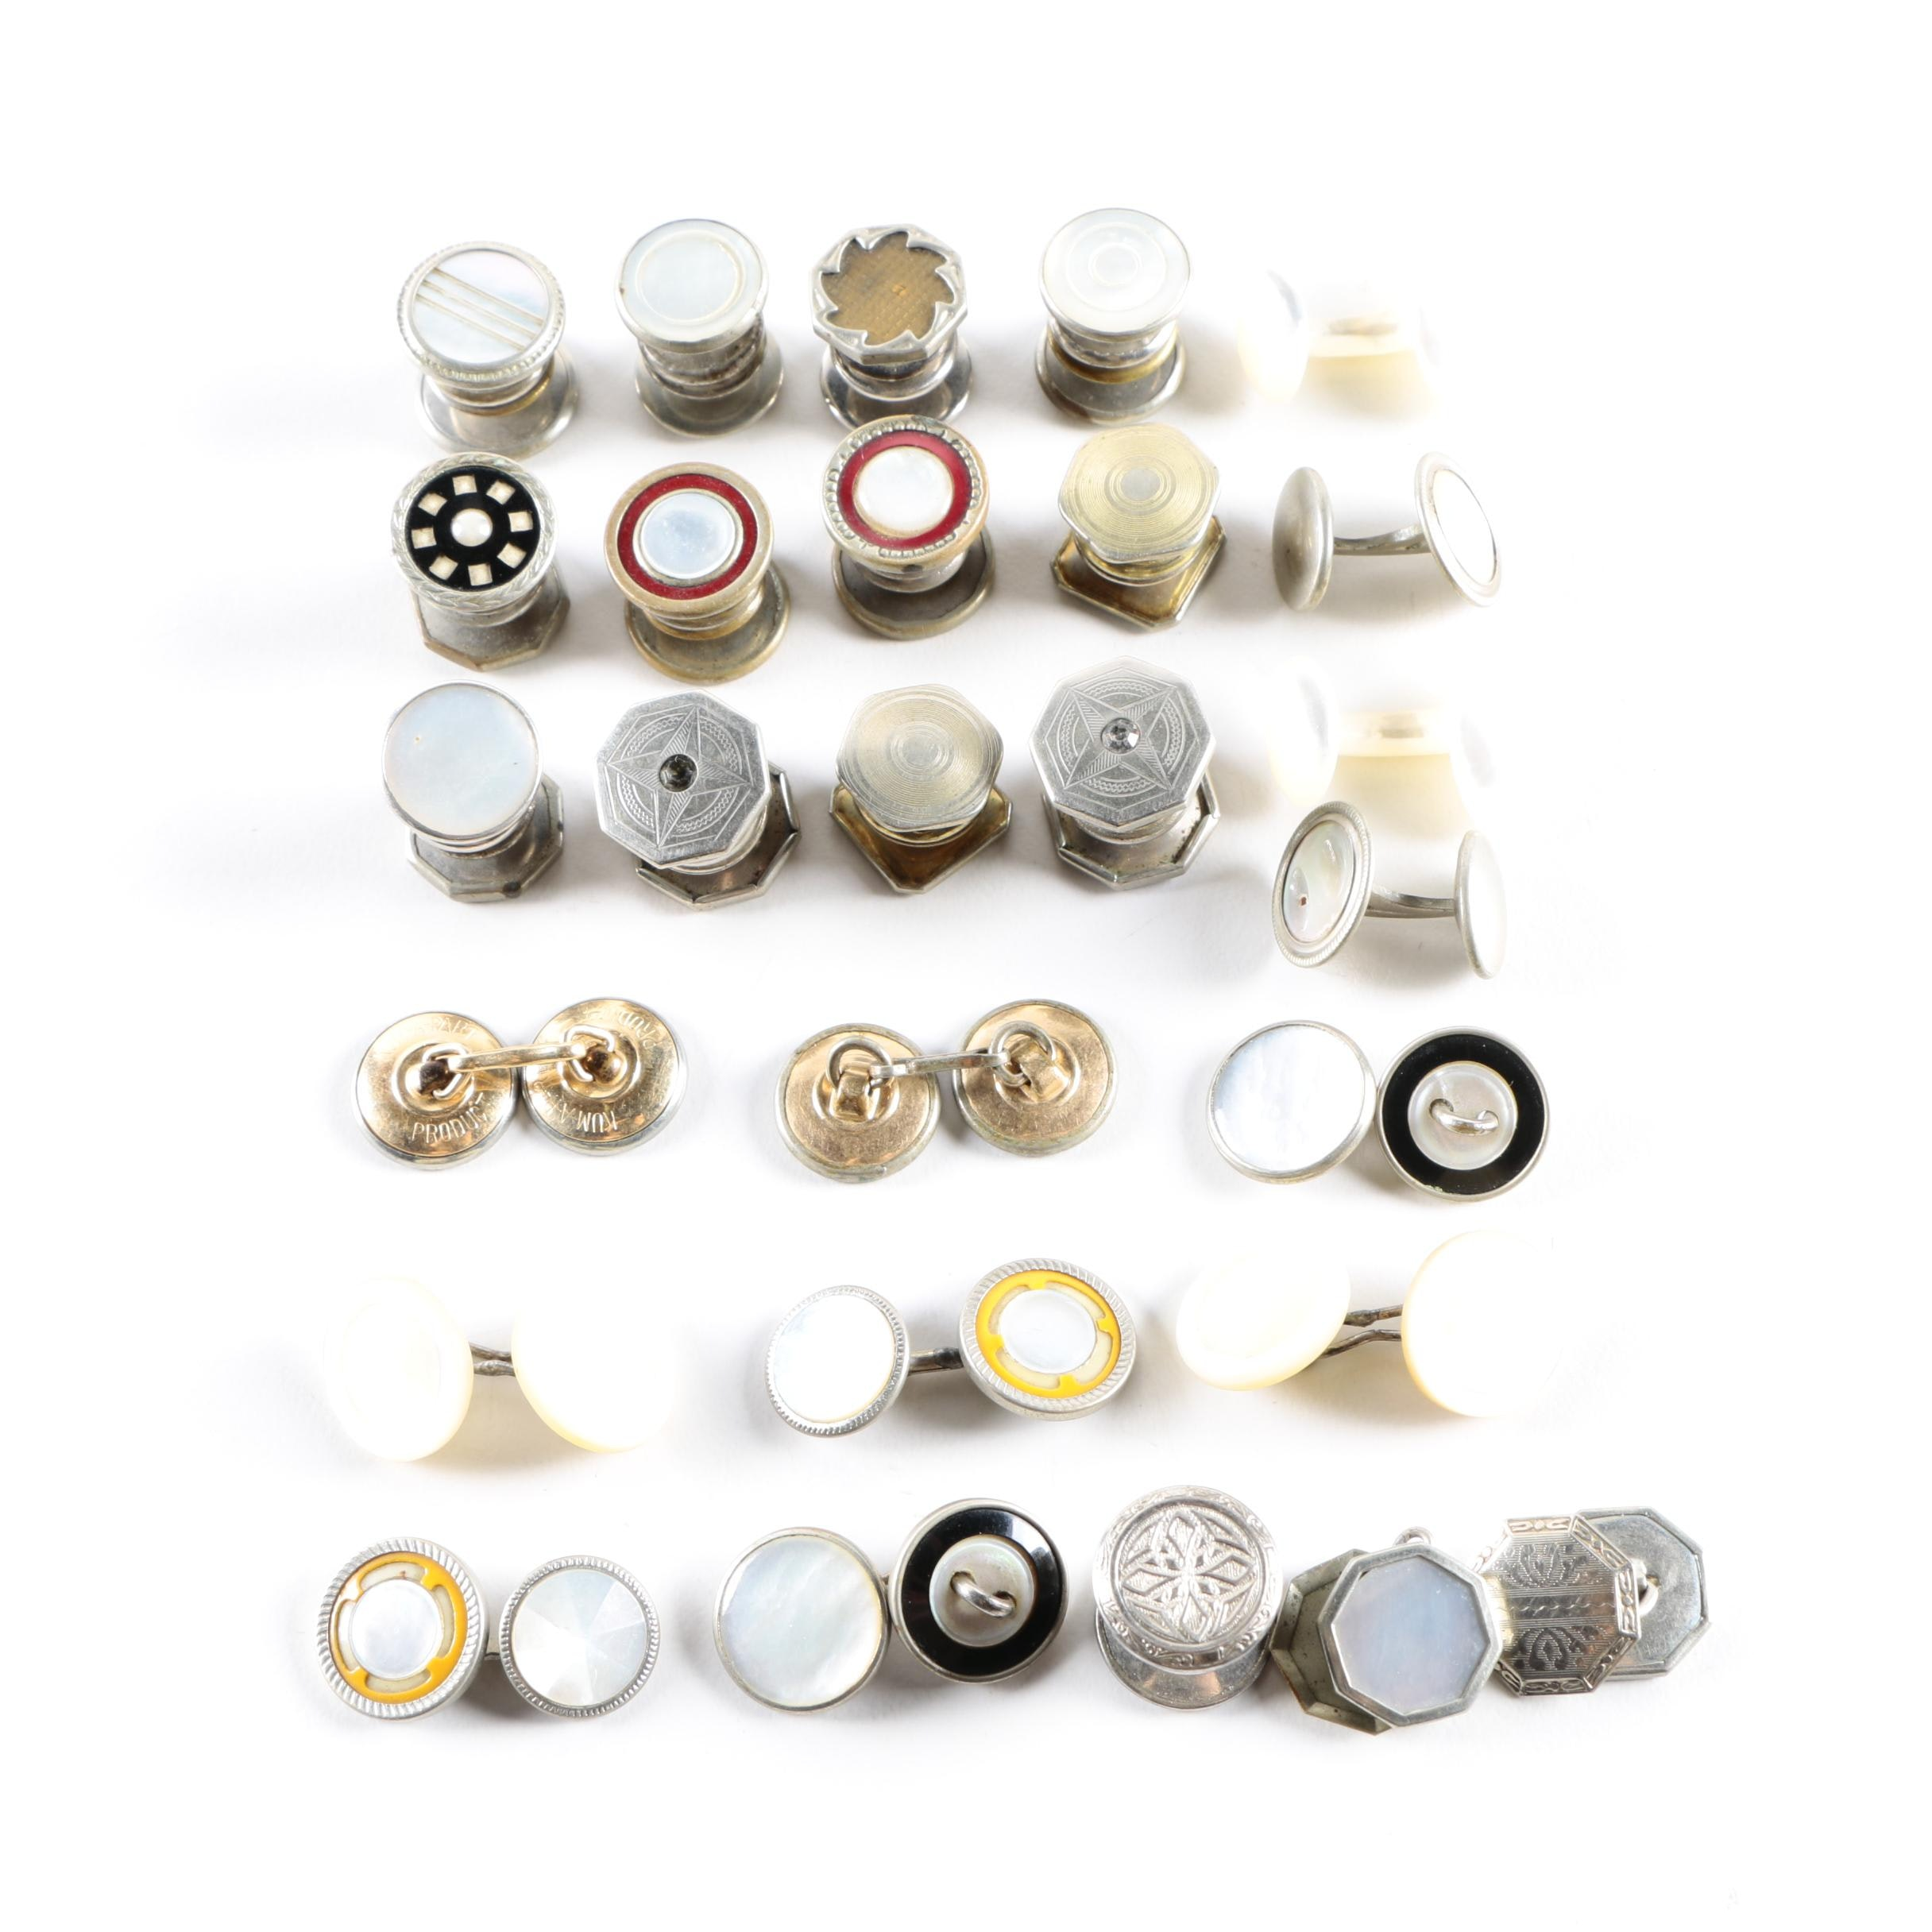 Assortment of Cufflinks Including Sterling Silver